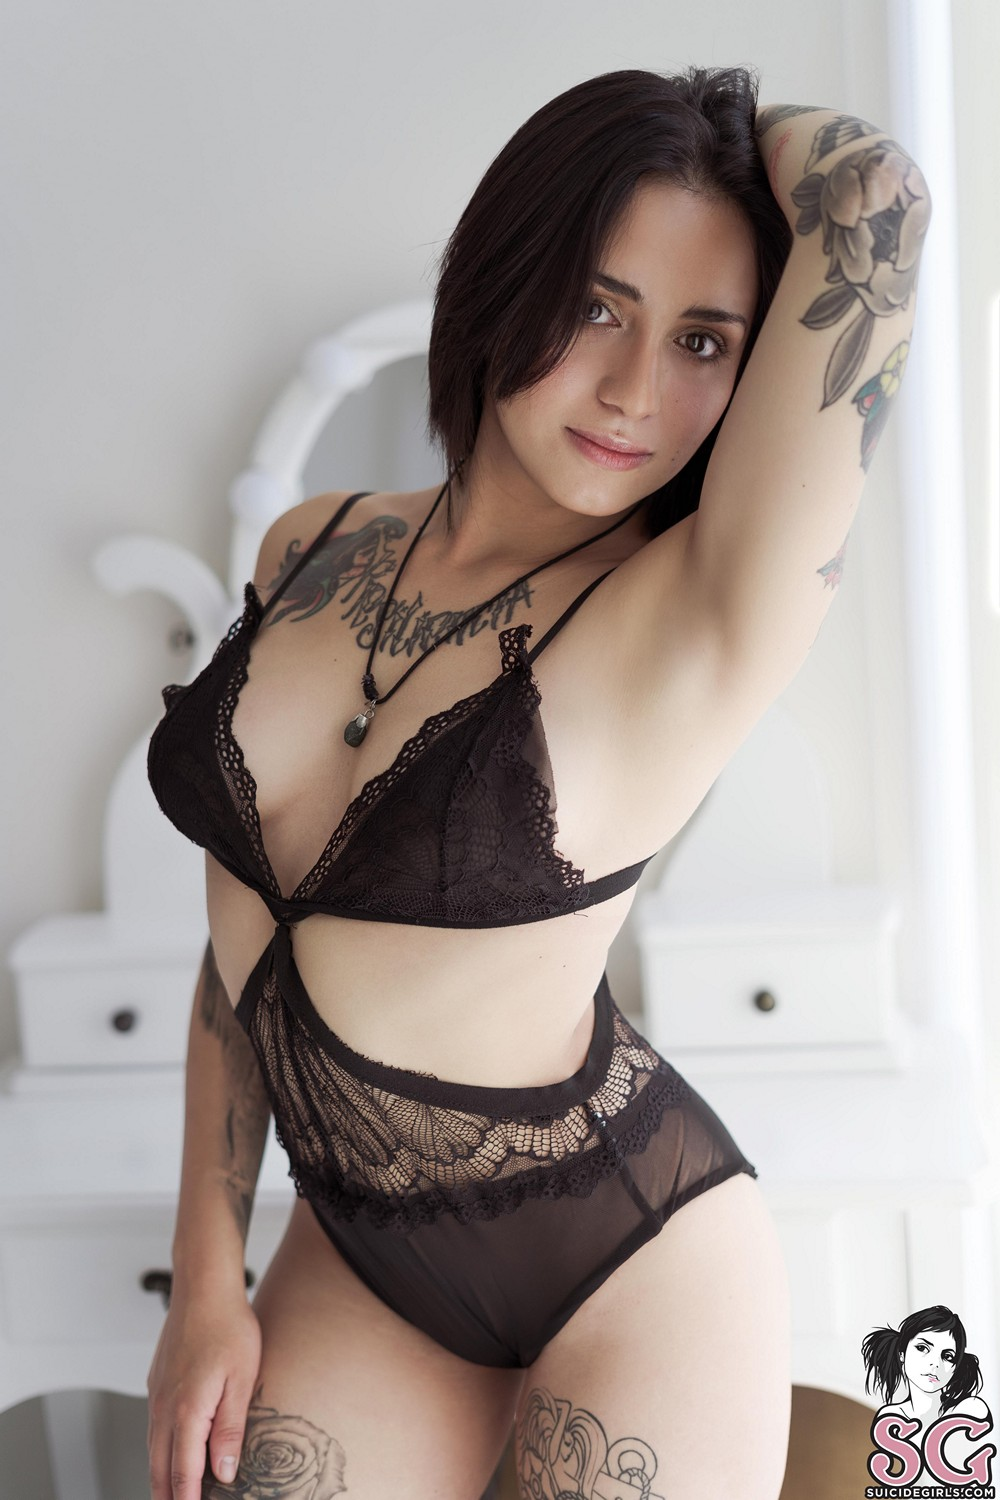 [Suicide Girls] Yanara -Tadow - 貼圖 - 歐美寫真 -